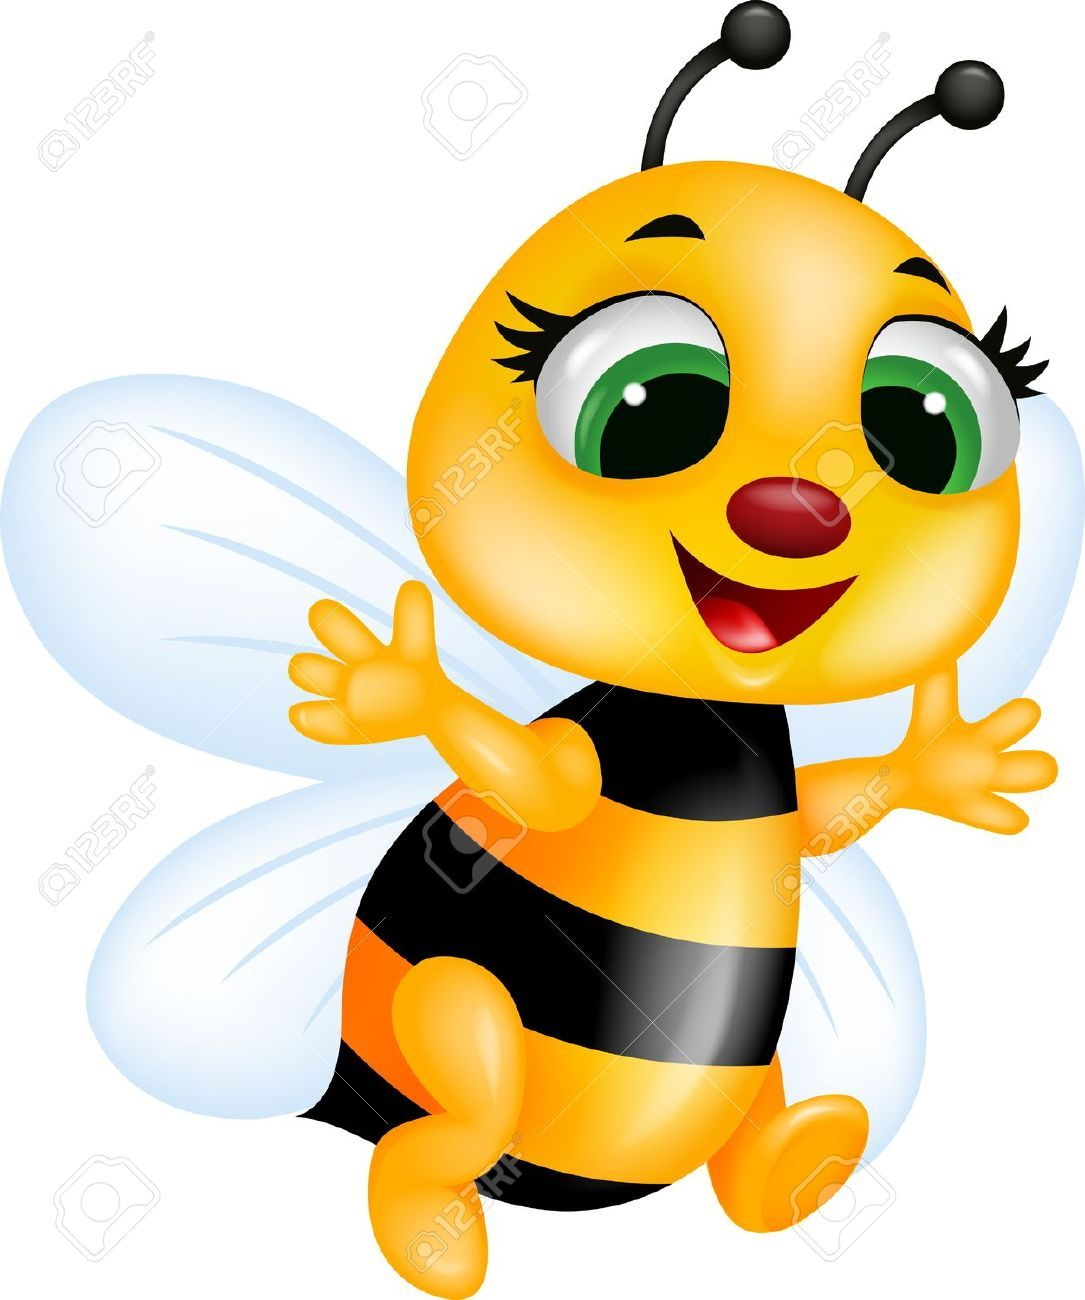 Bee Cartoon Royalty Free Cliparts, Vectors, And Stock Illustration ...